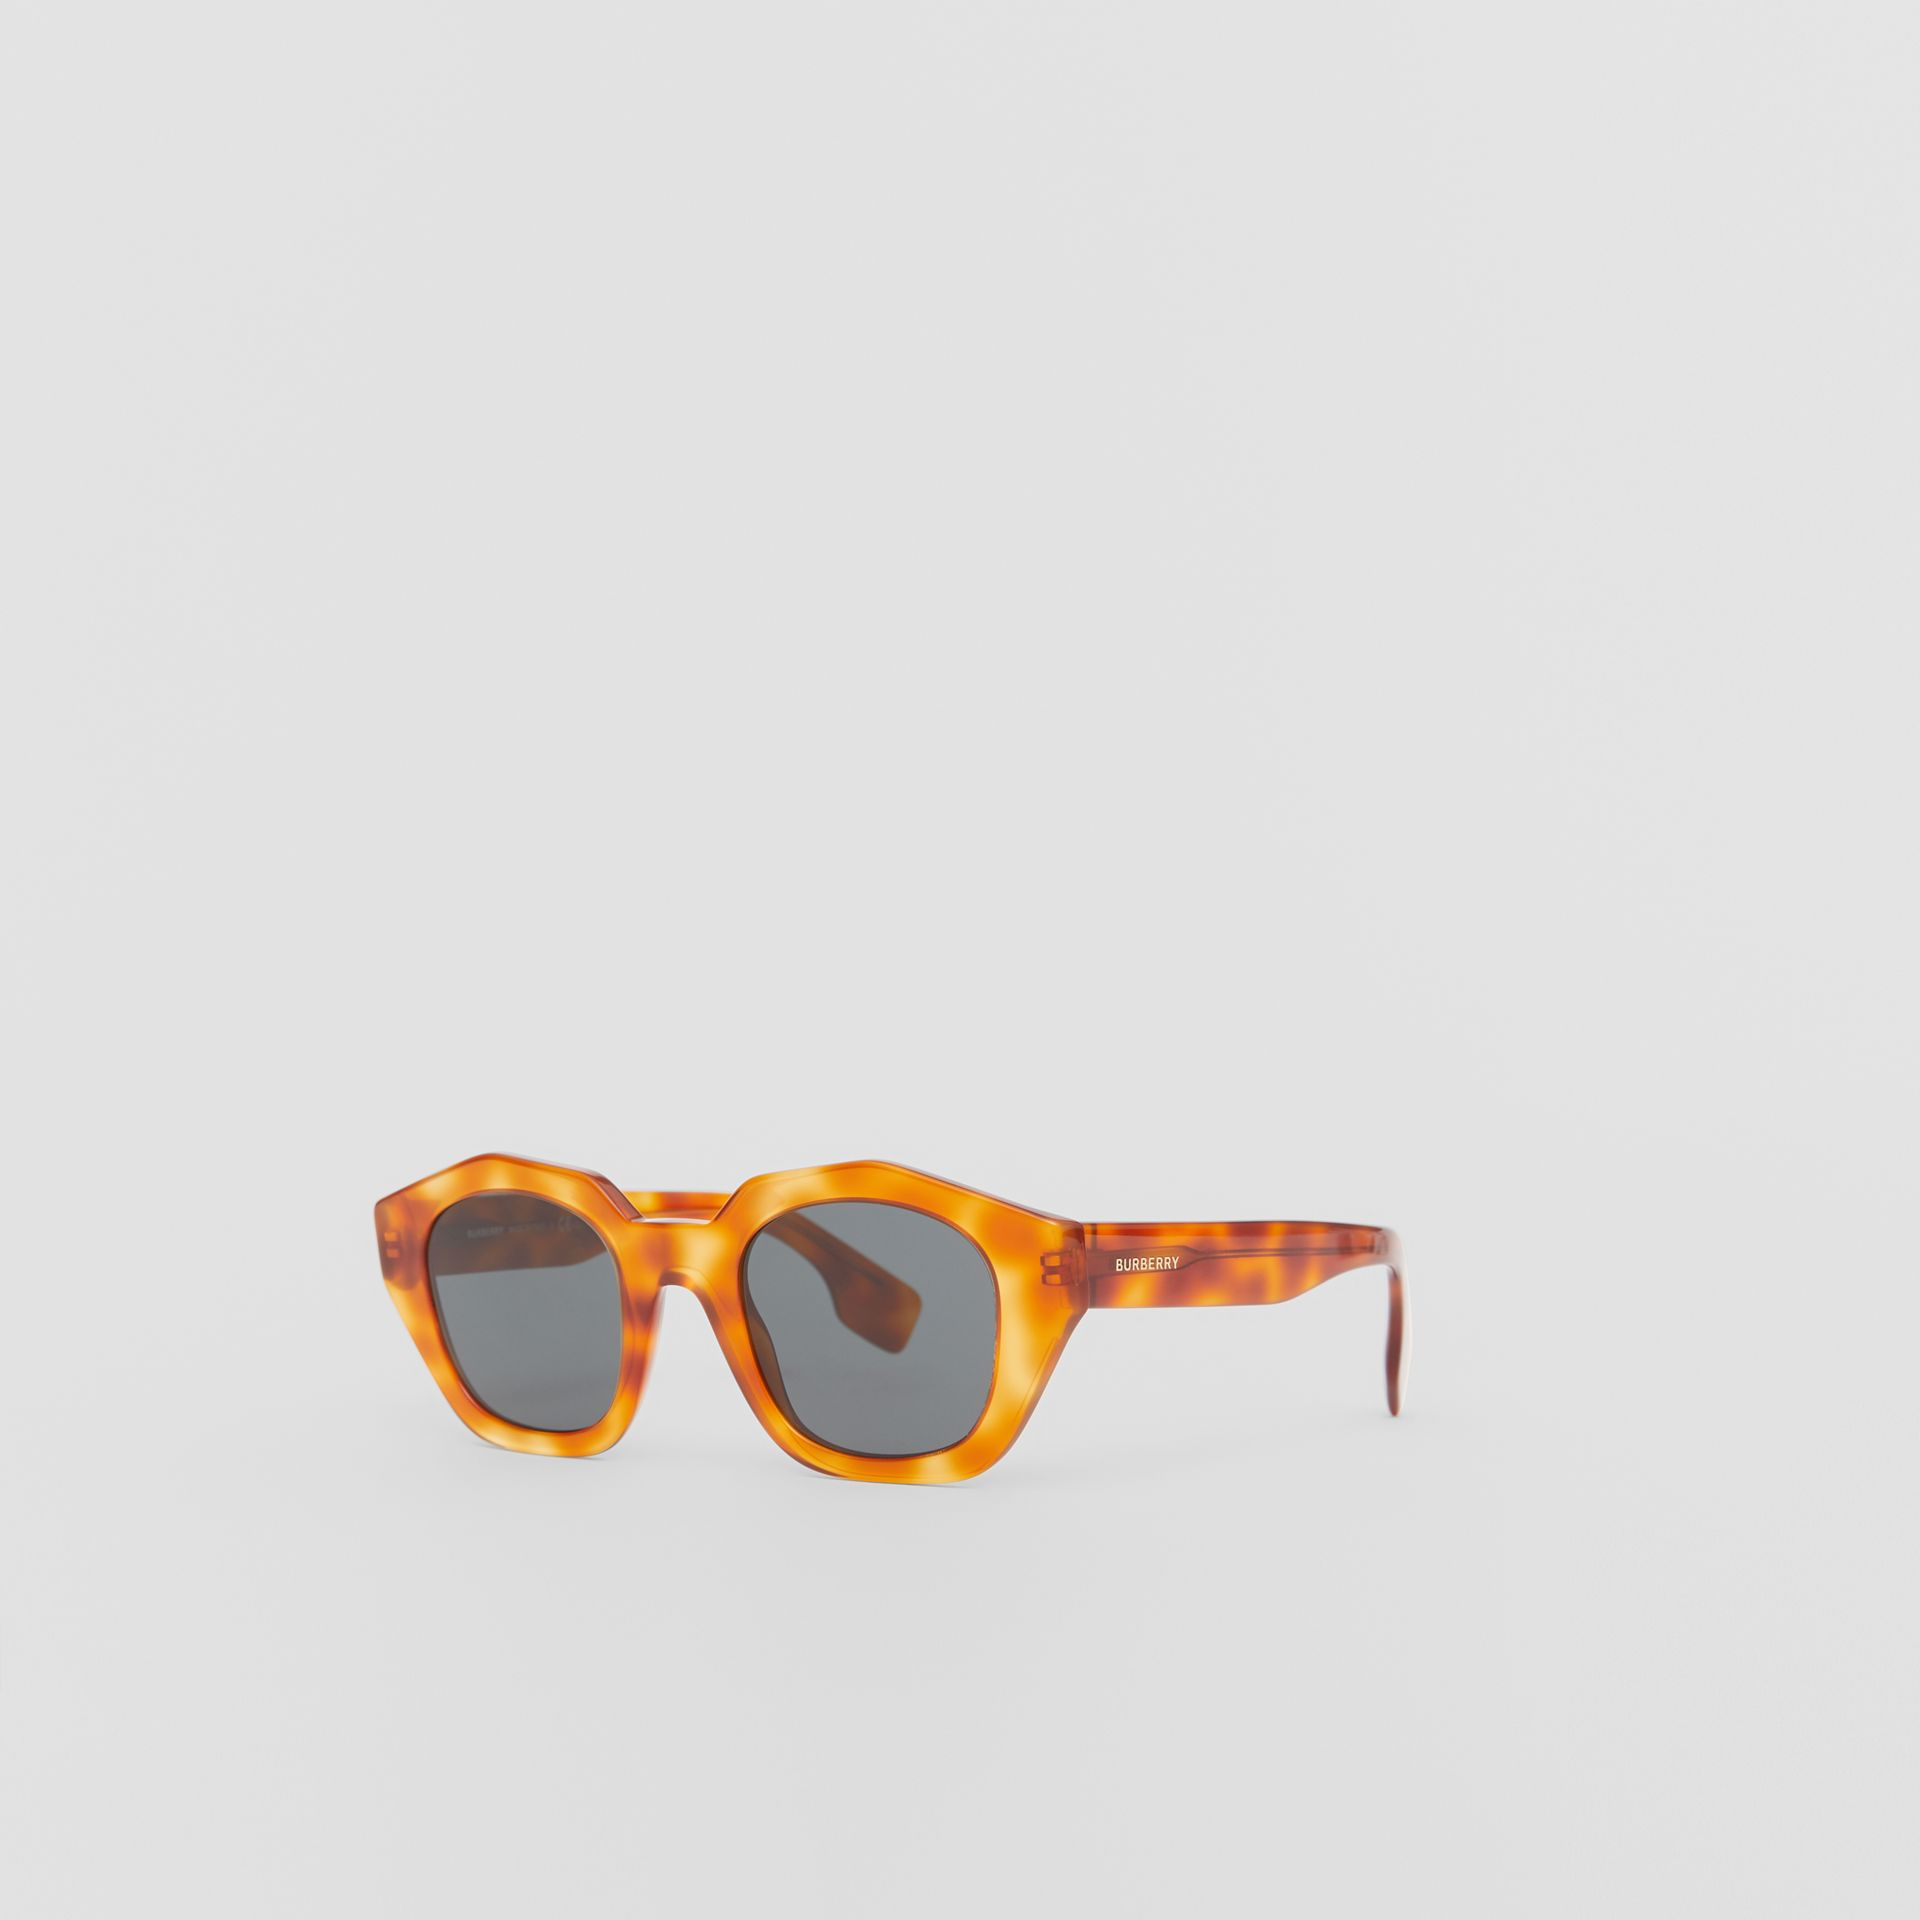 Geometric Frame Sunglasses in Tortoiseshell Amber - Women | Burberry Singapore - gallery image 5